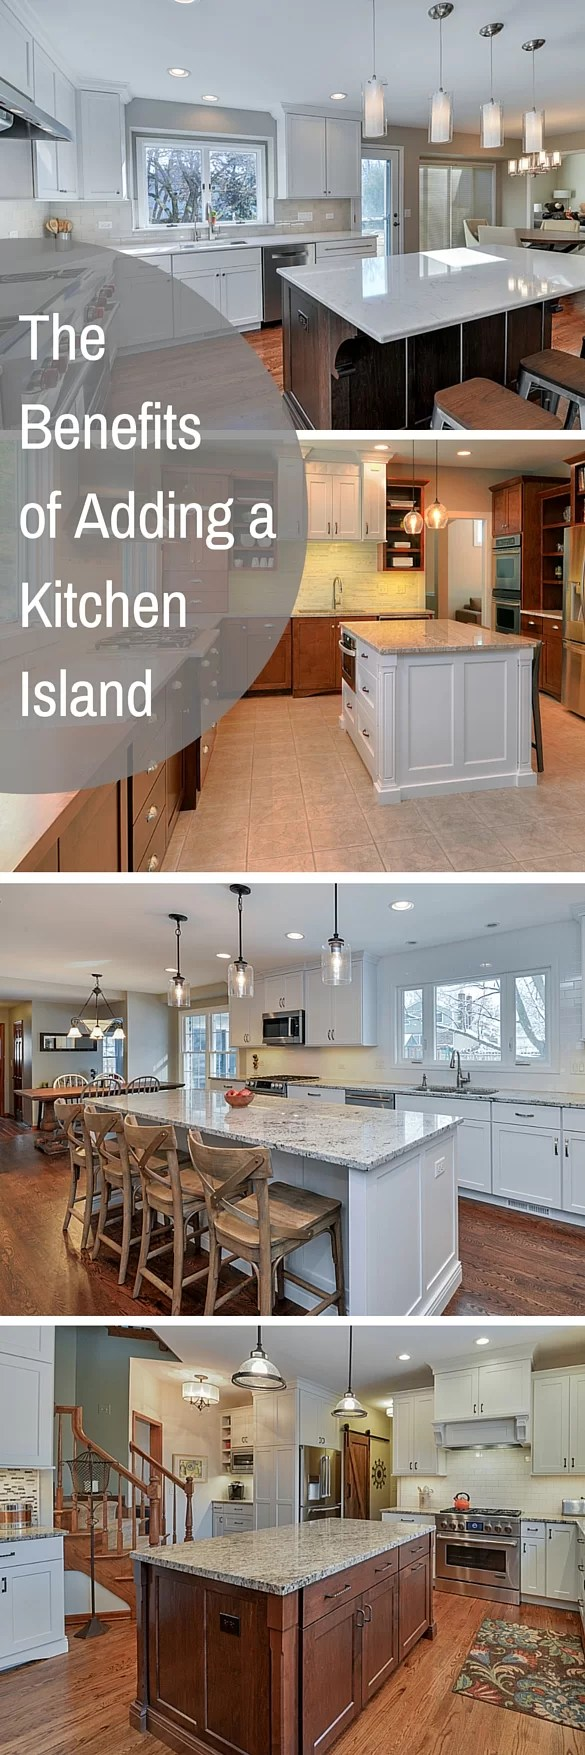 the benefits of adding an island to your kitchen | home remodeling